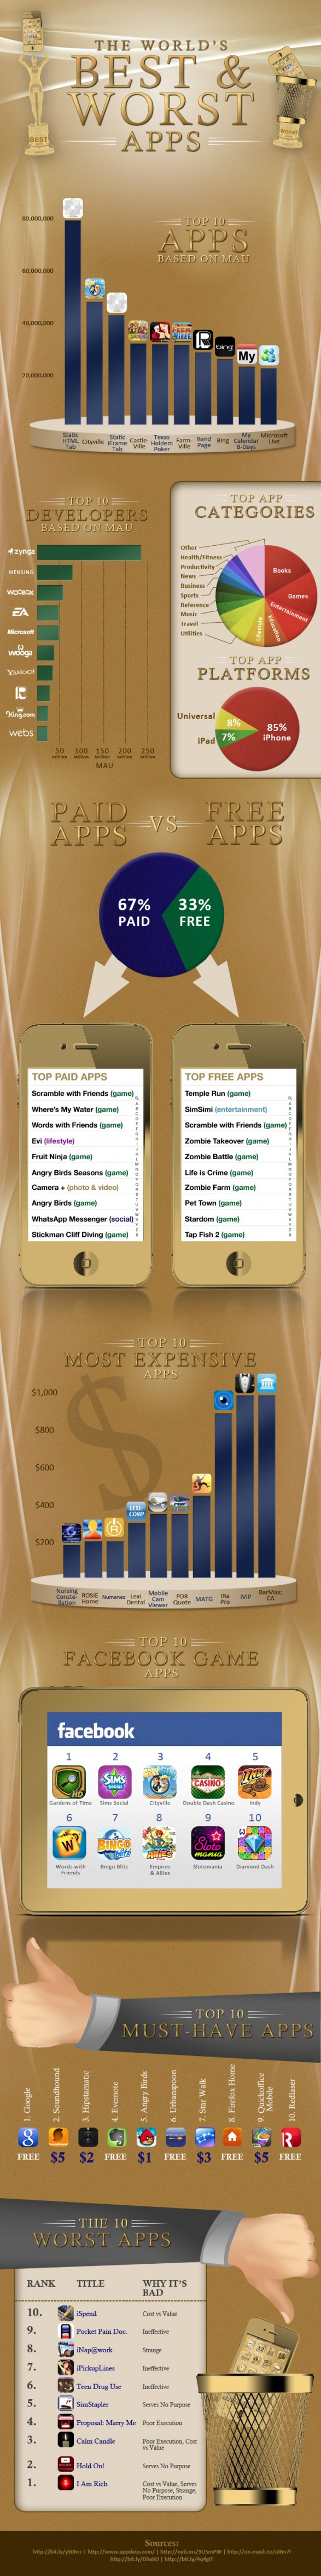 The World's Best and Worst Apps (infographic) Iphone app